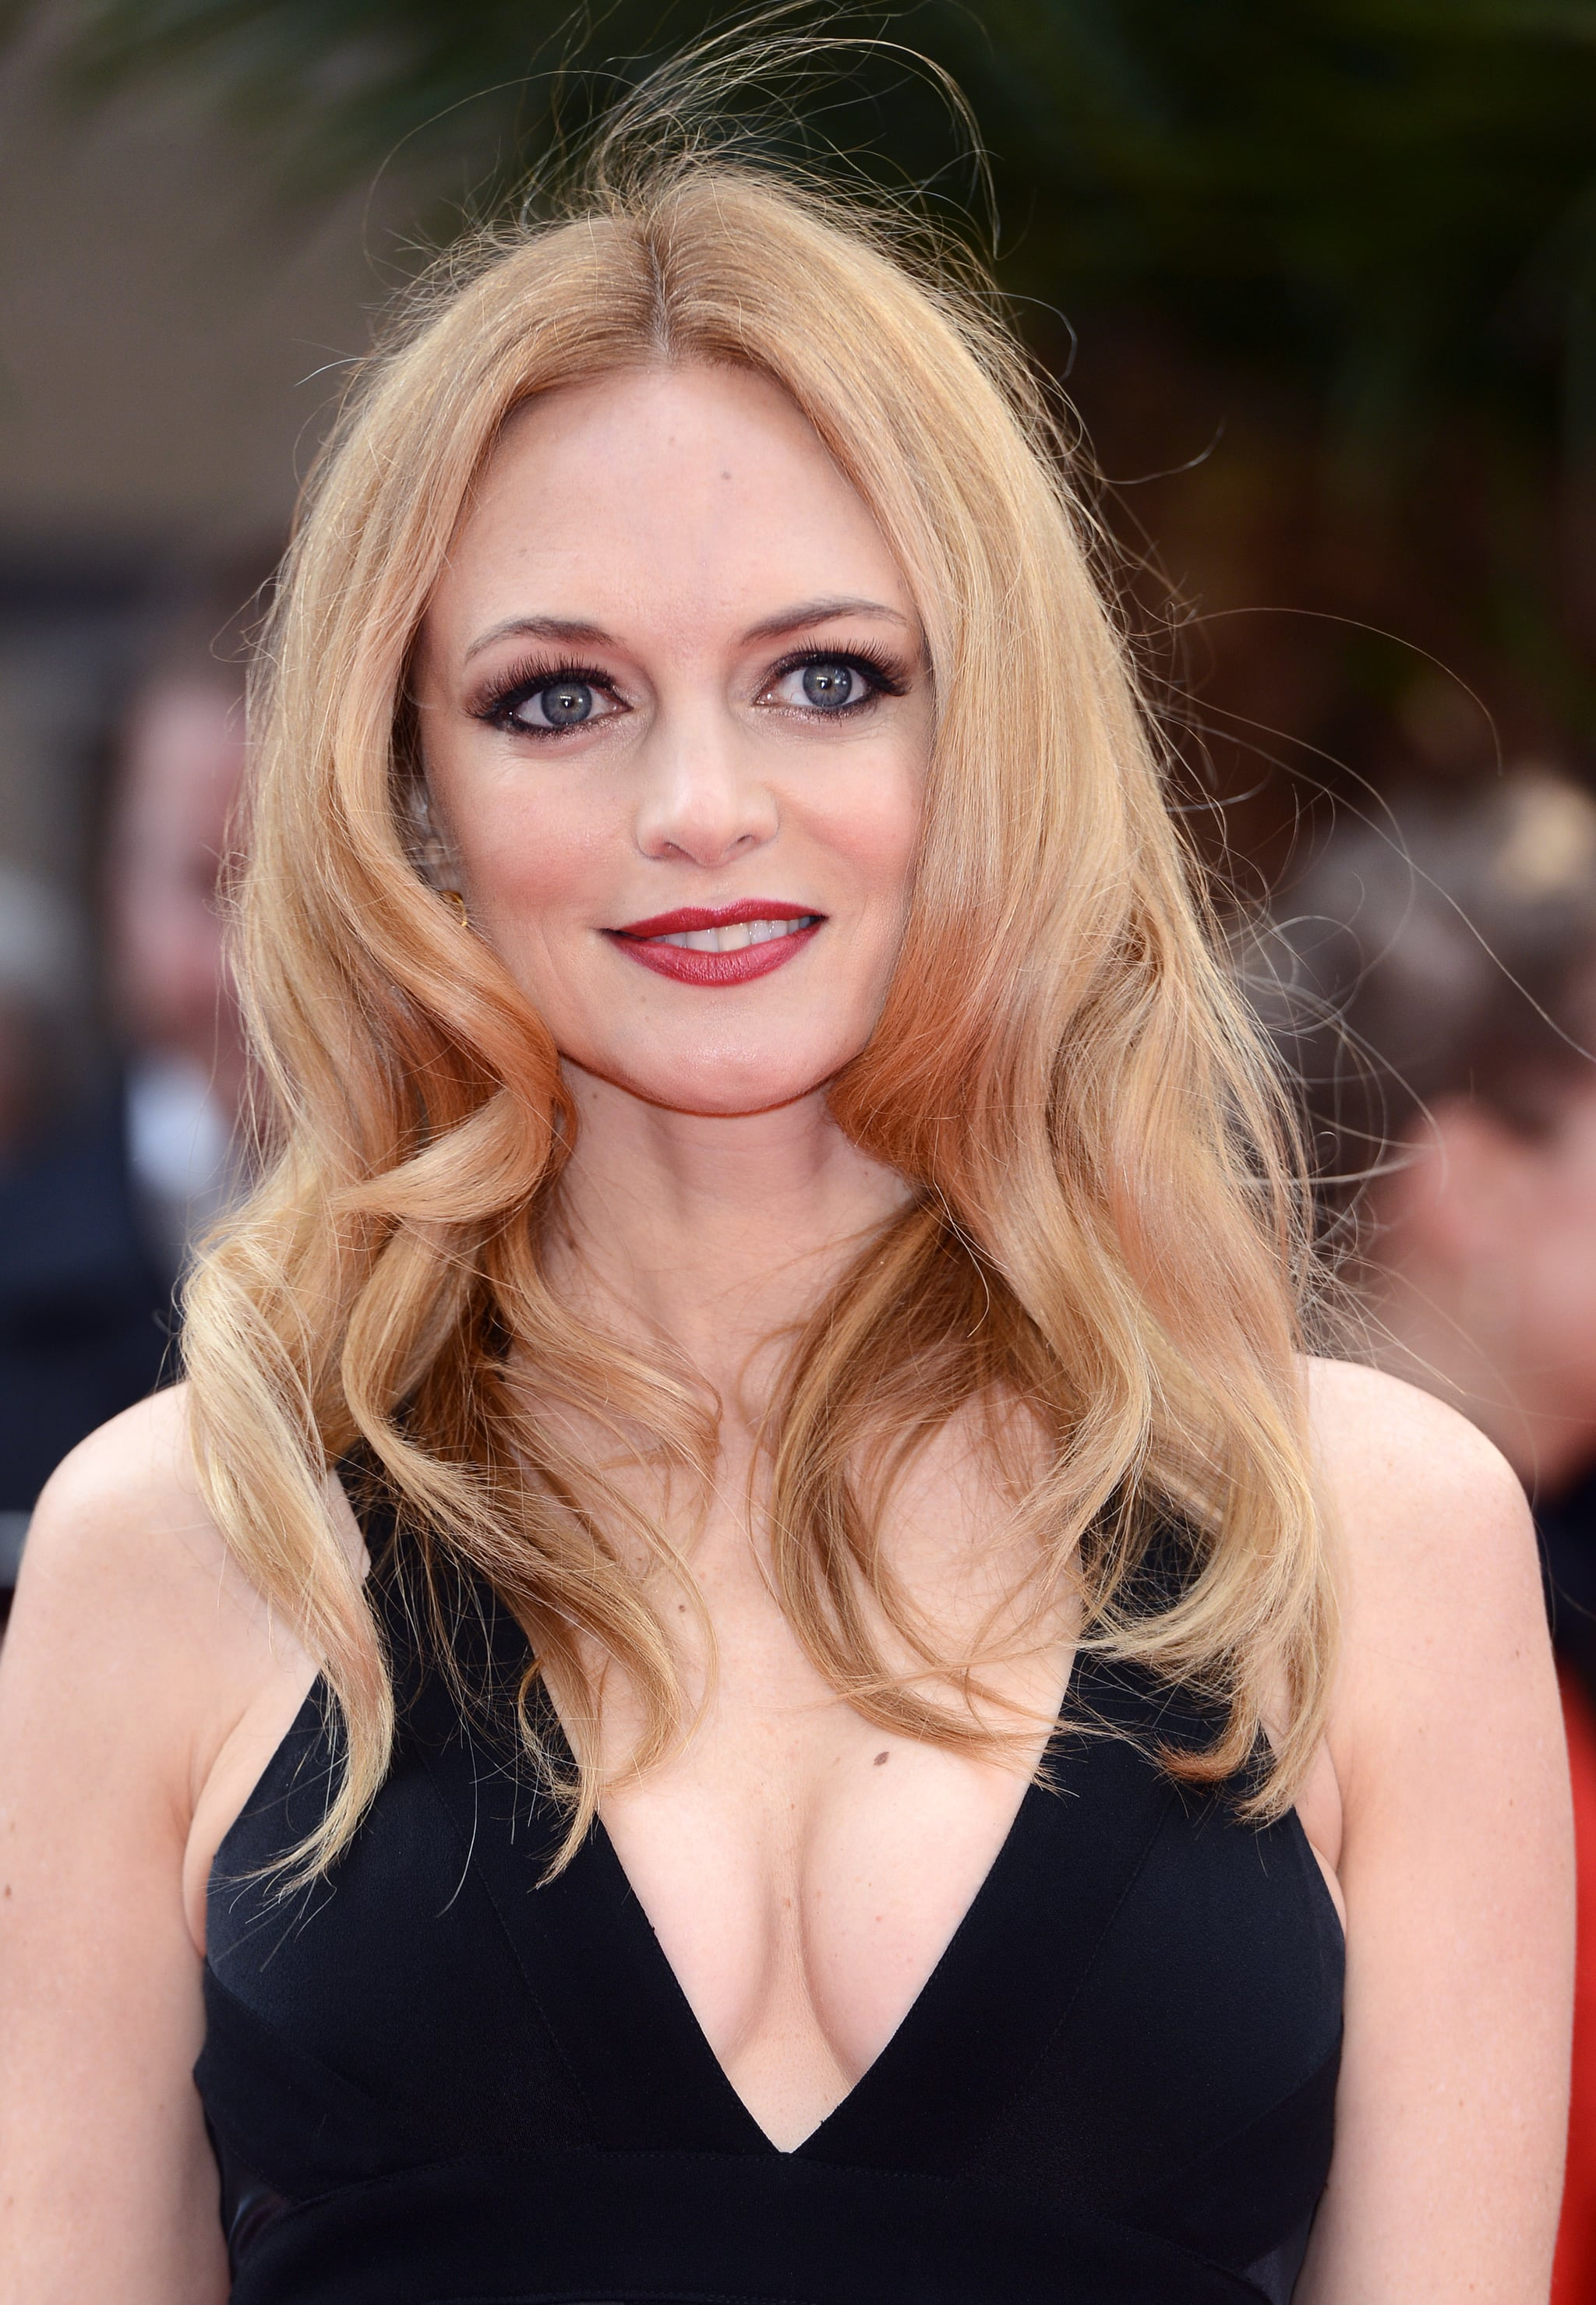 Heather Graham turned up the sex appeal with her beach waves and bedroom eyes.